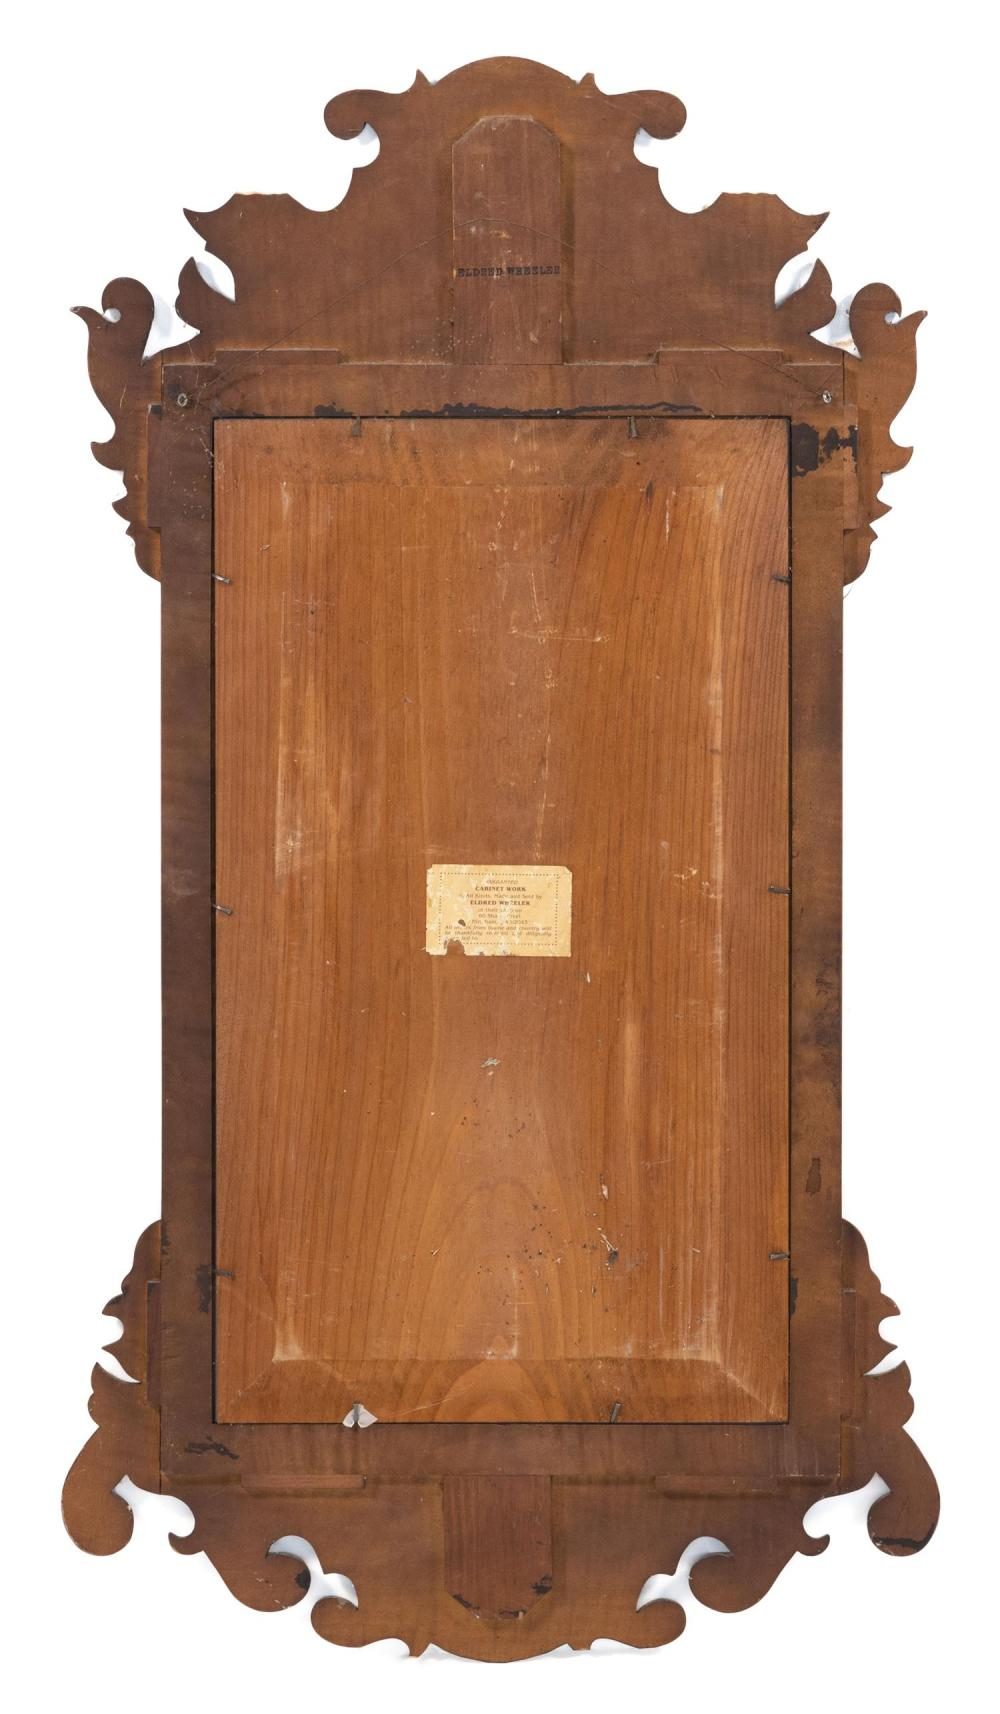 ELDRED WHEELER CHIPPENDALE-STYLE MIRROR In tiger maple. Original label on back. Height 37.5